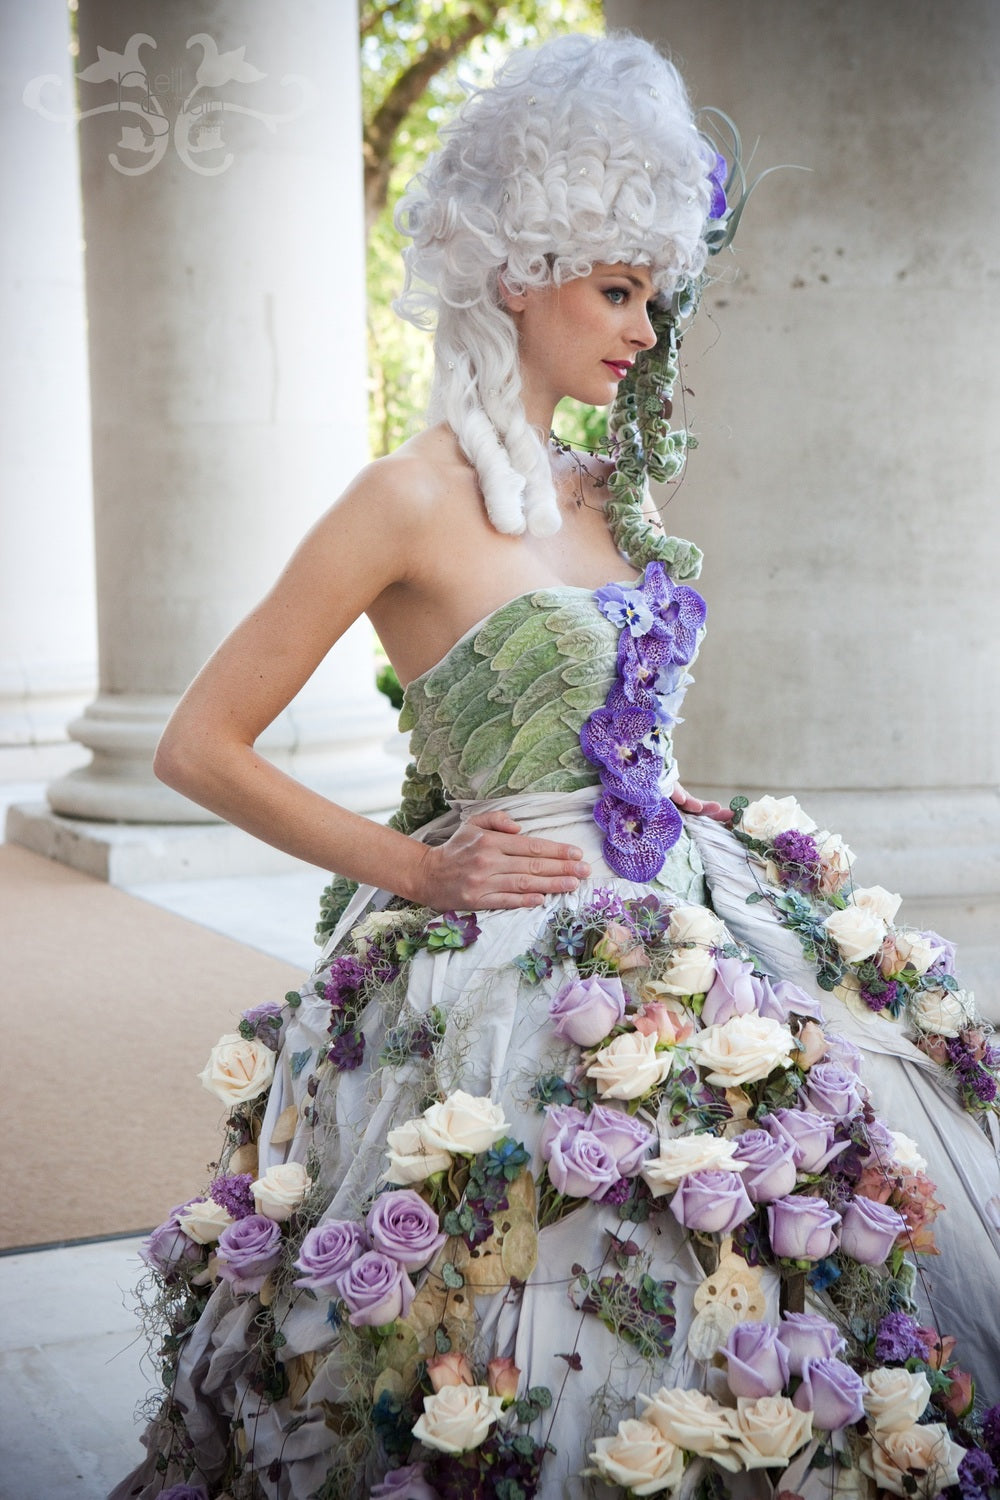 Wedding gown designed by Neill Strain in collaboration with Ian Stuart. Photographer: Tamara Peel